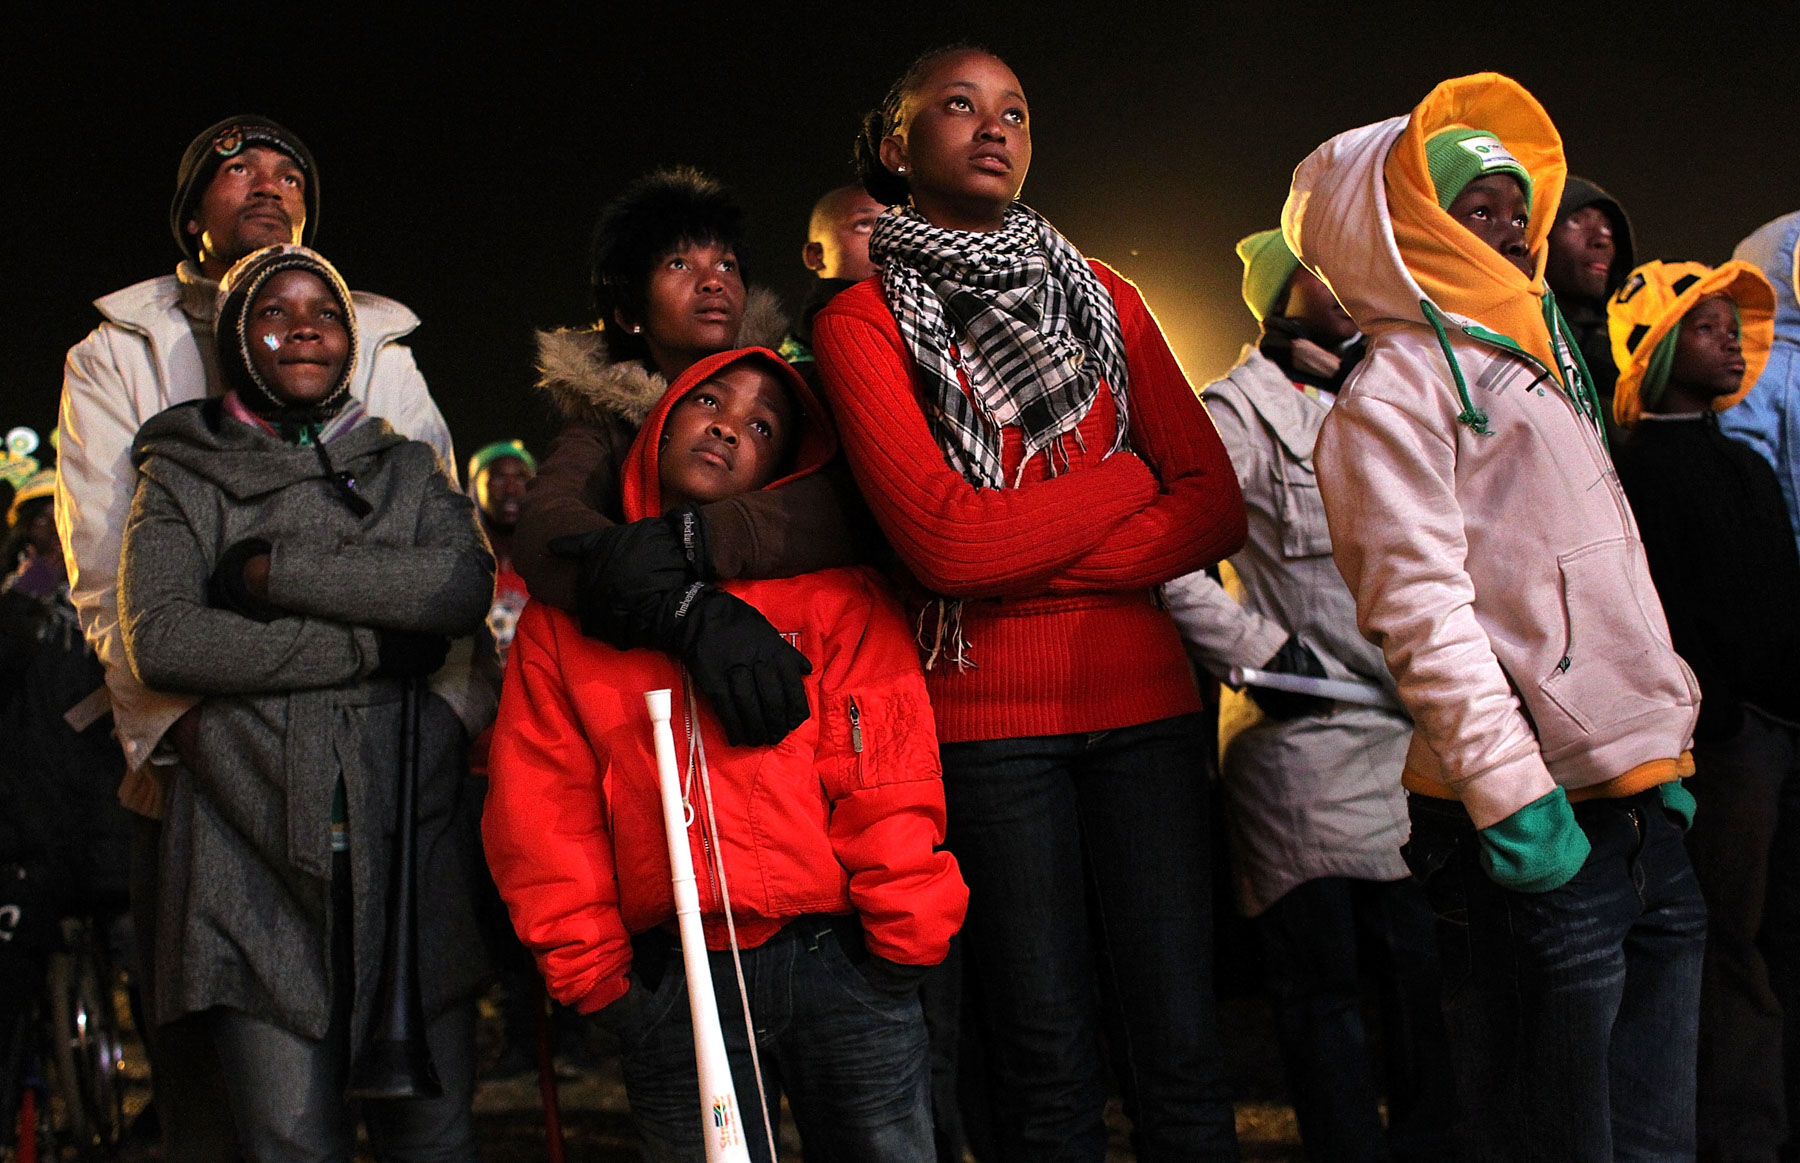 16 June 2010: Spectators at a Soweto fan park watch as Uruguay defeats South Africa 3-0. (Photograph by John Moore/ Getty Images)